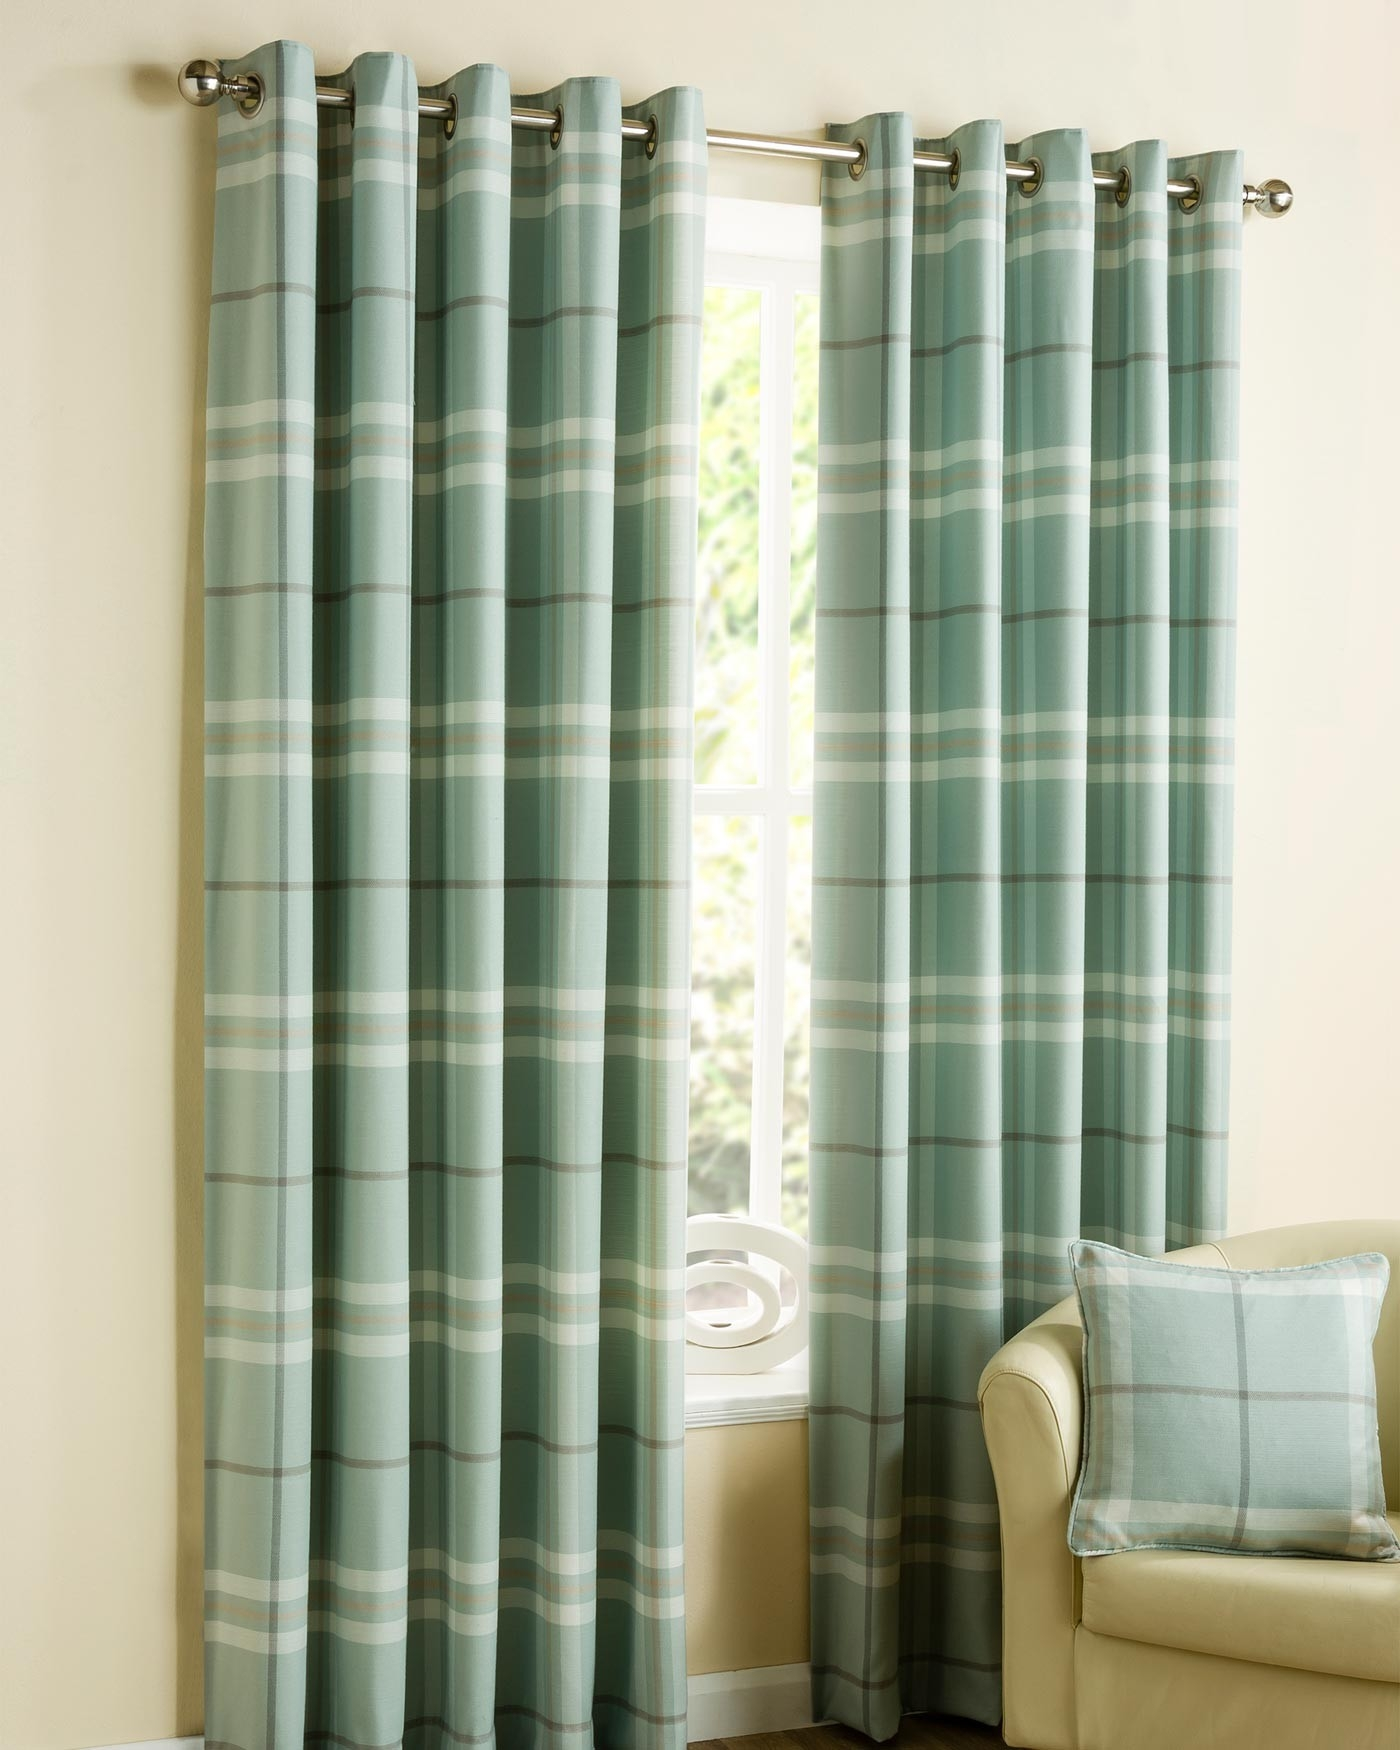 Duck Egg Blue Lomond Tartan Check Eyelet Curtains Belfield Throughout Duck Egg Blue Blackout Curtains (Image 7 of 15)